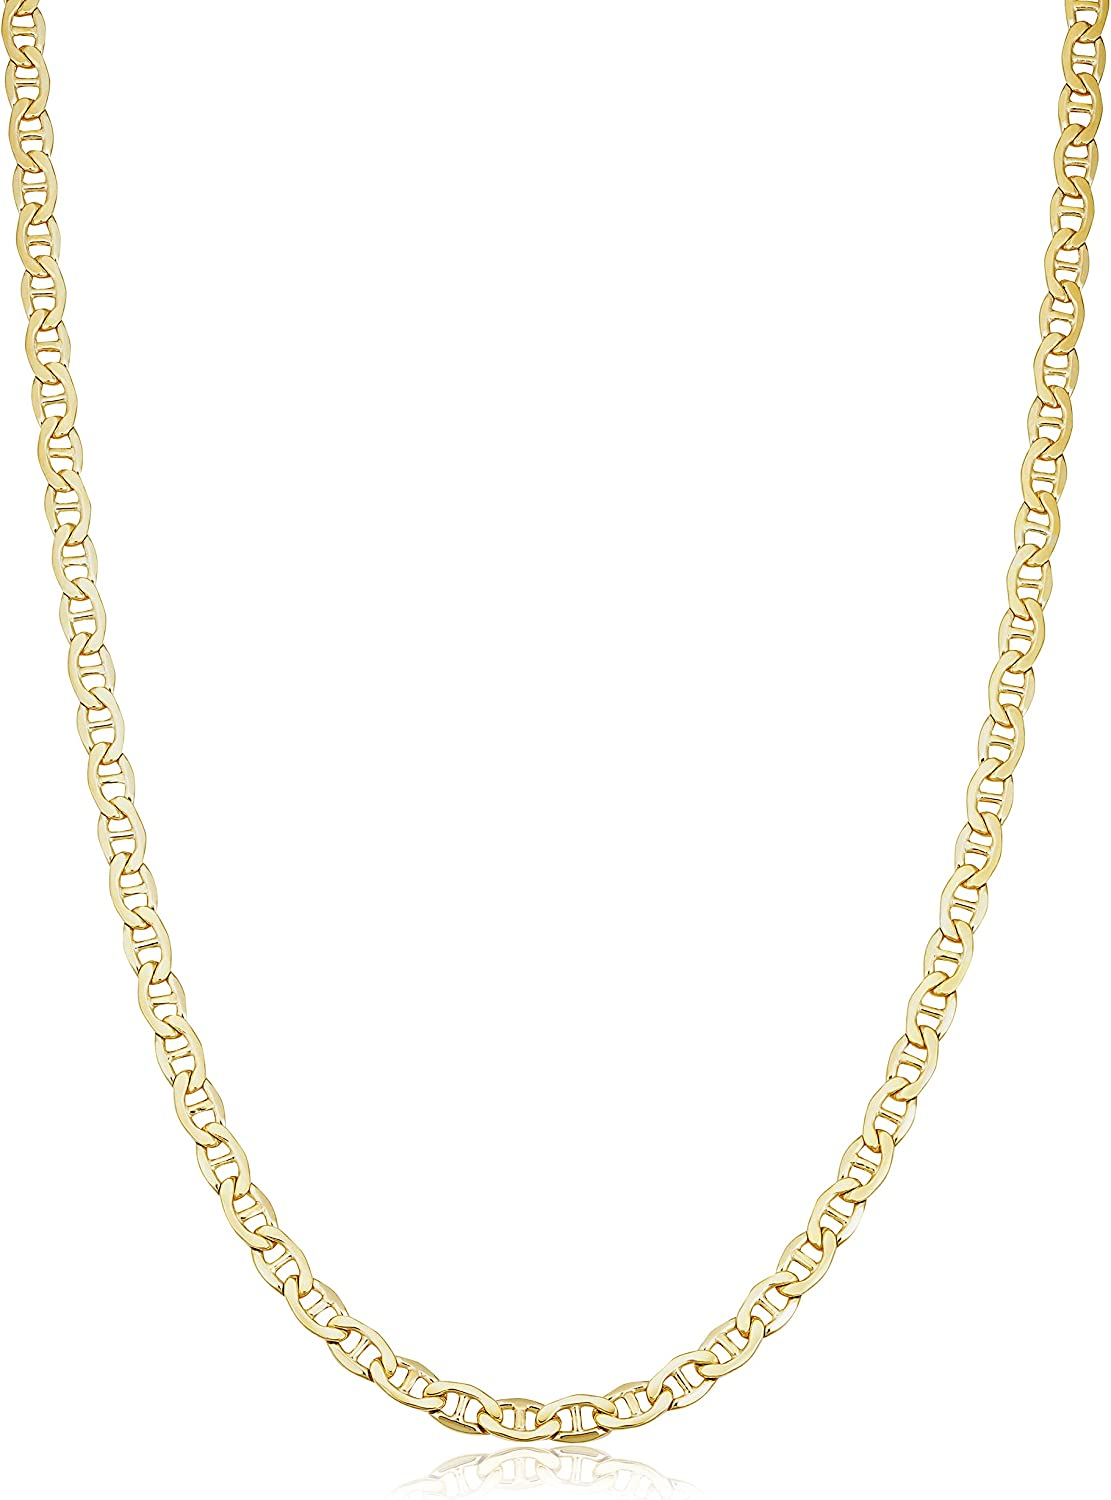 Solid 14k Yellow Gold Max 59% OFF Filled Super intense SALE Mariner Necklace for Chain Link Men